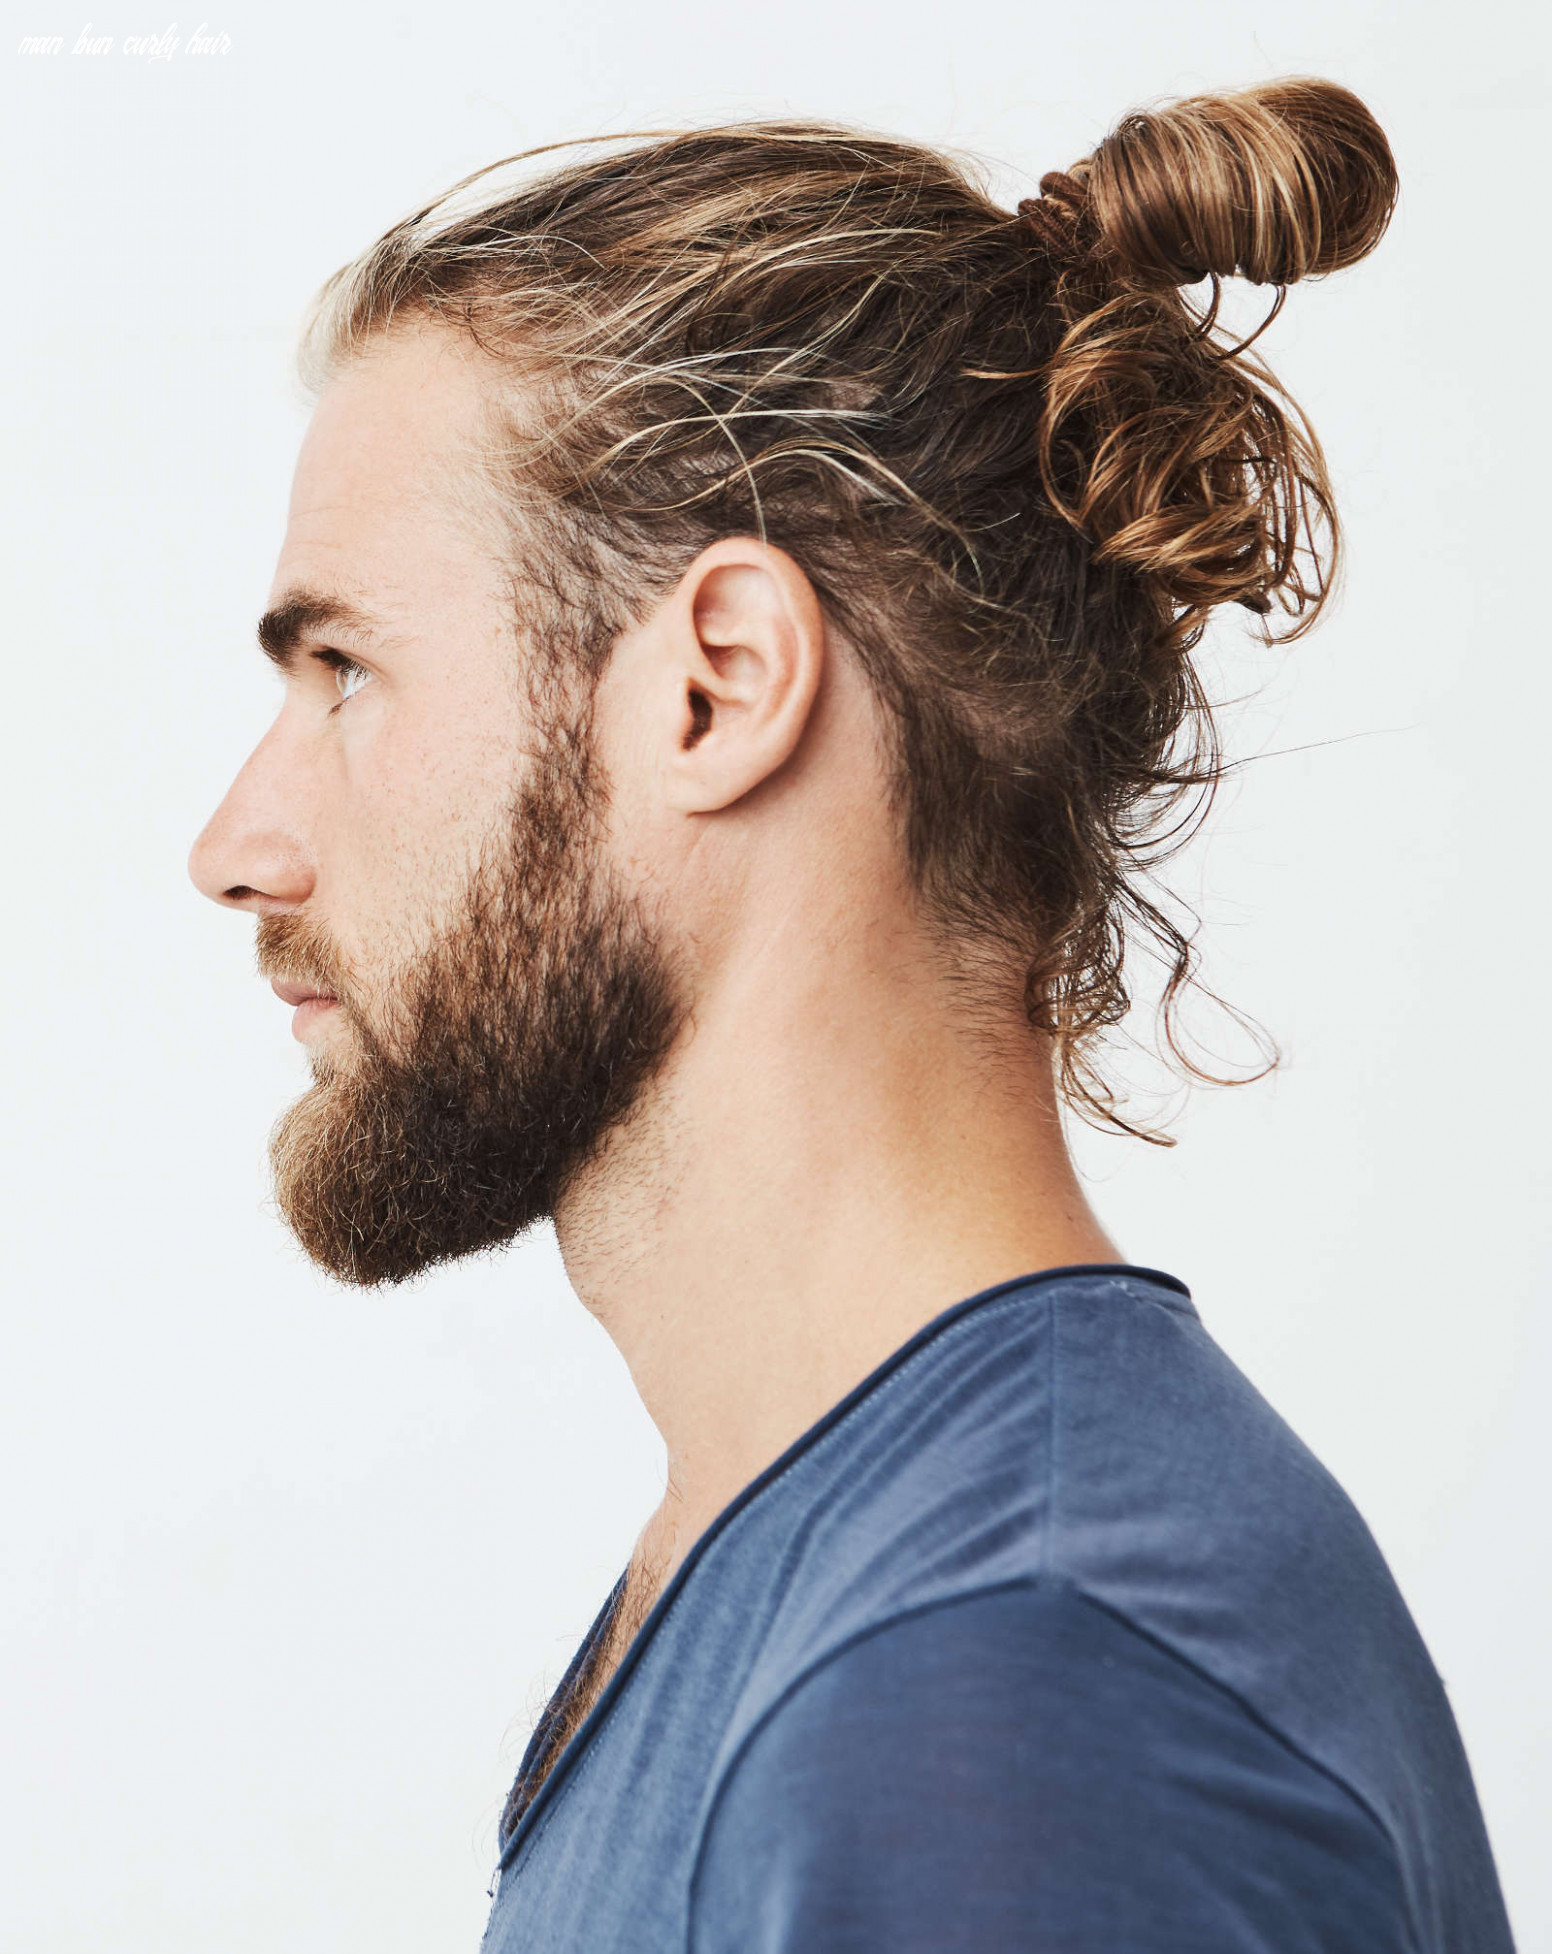 11 Types of Man Bun Hairstyles | Gallery + How To